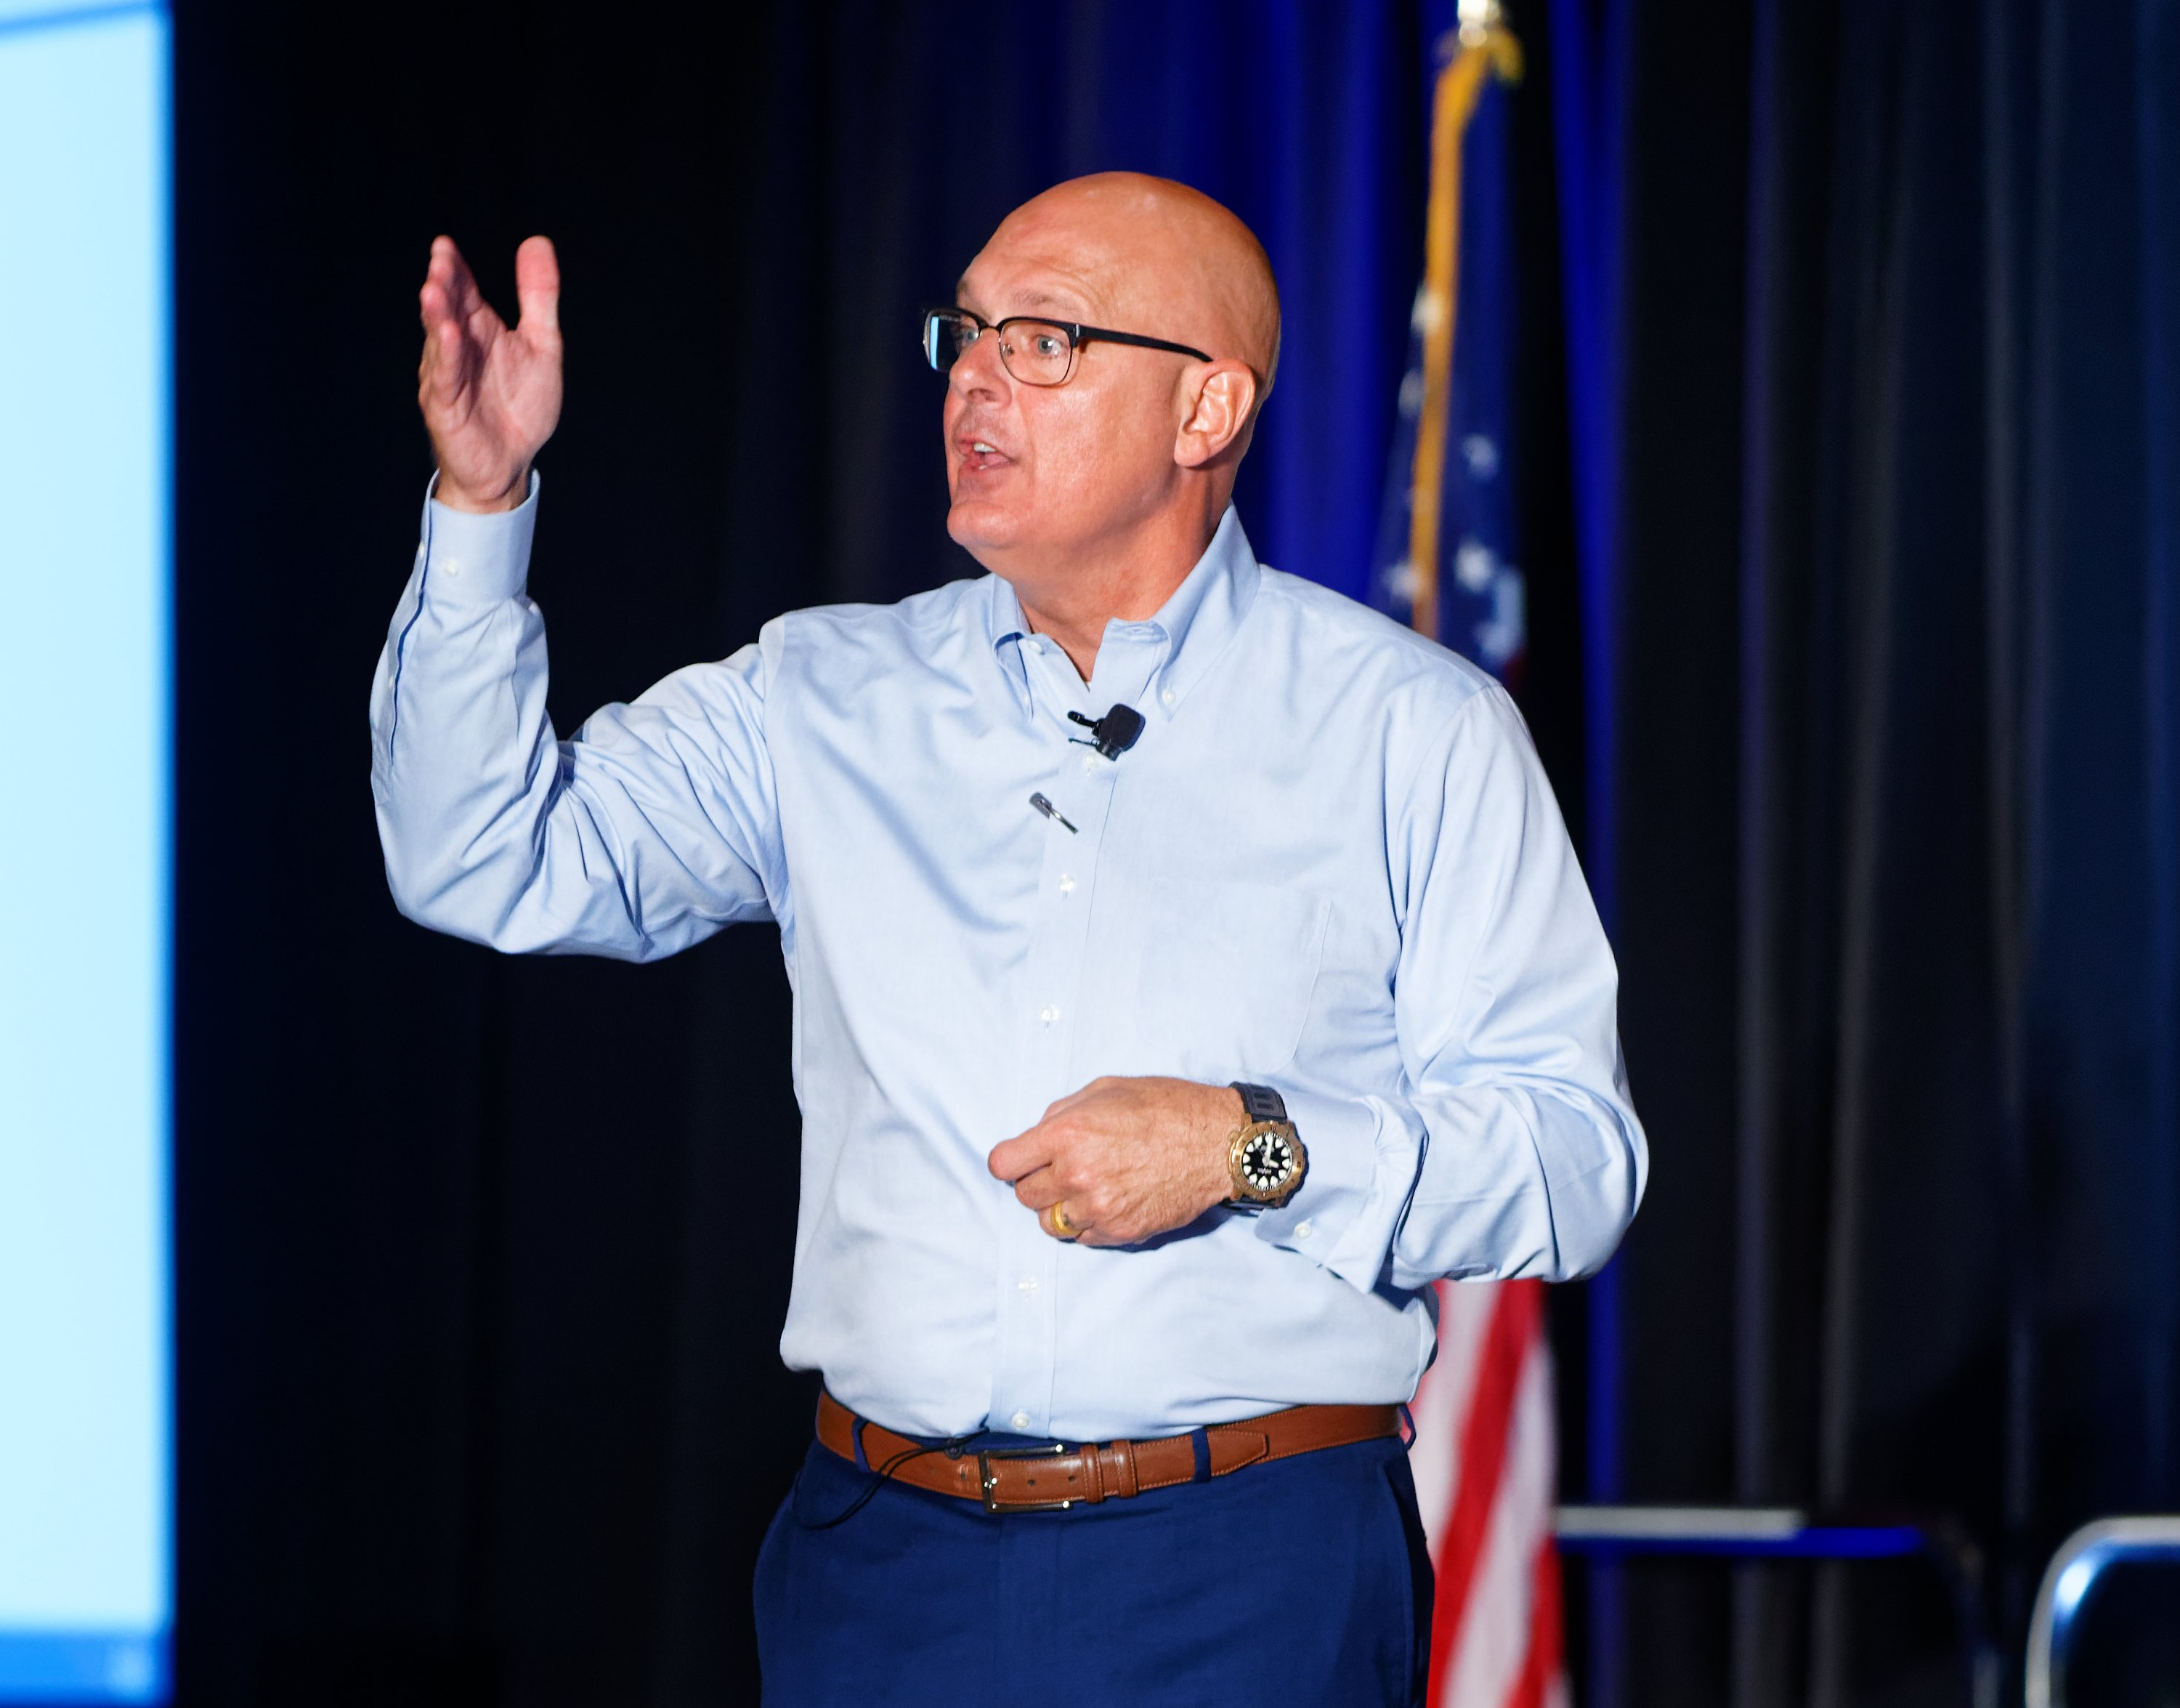 Campus Safety Conference East 2019 - 0213_DxO.jpg